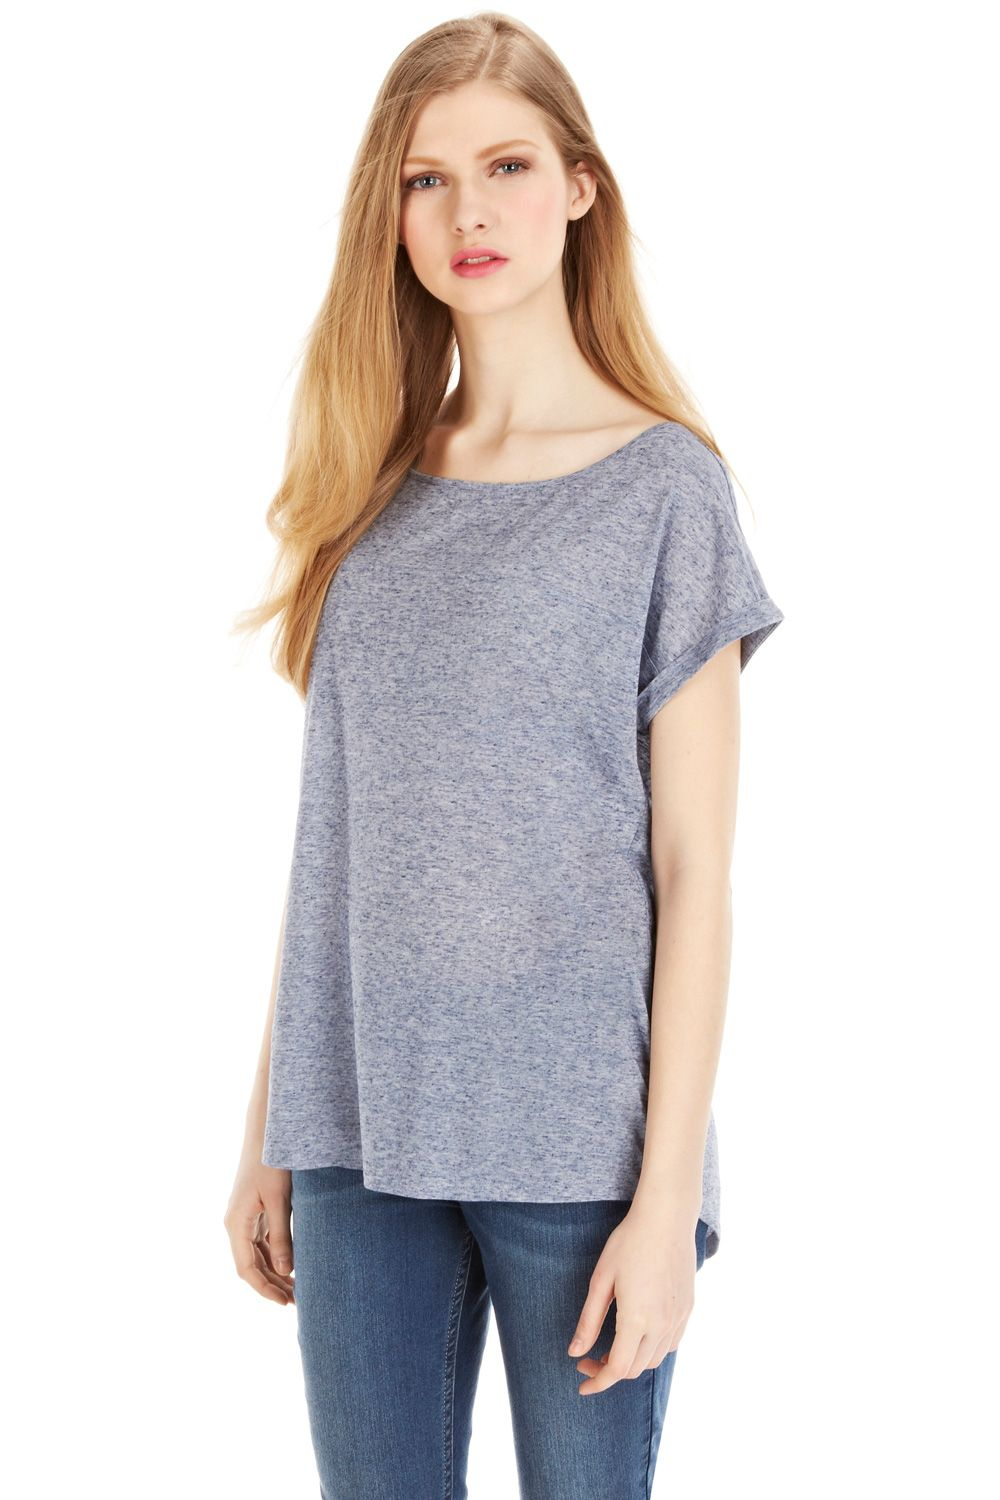 Tail back casual slub tee